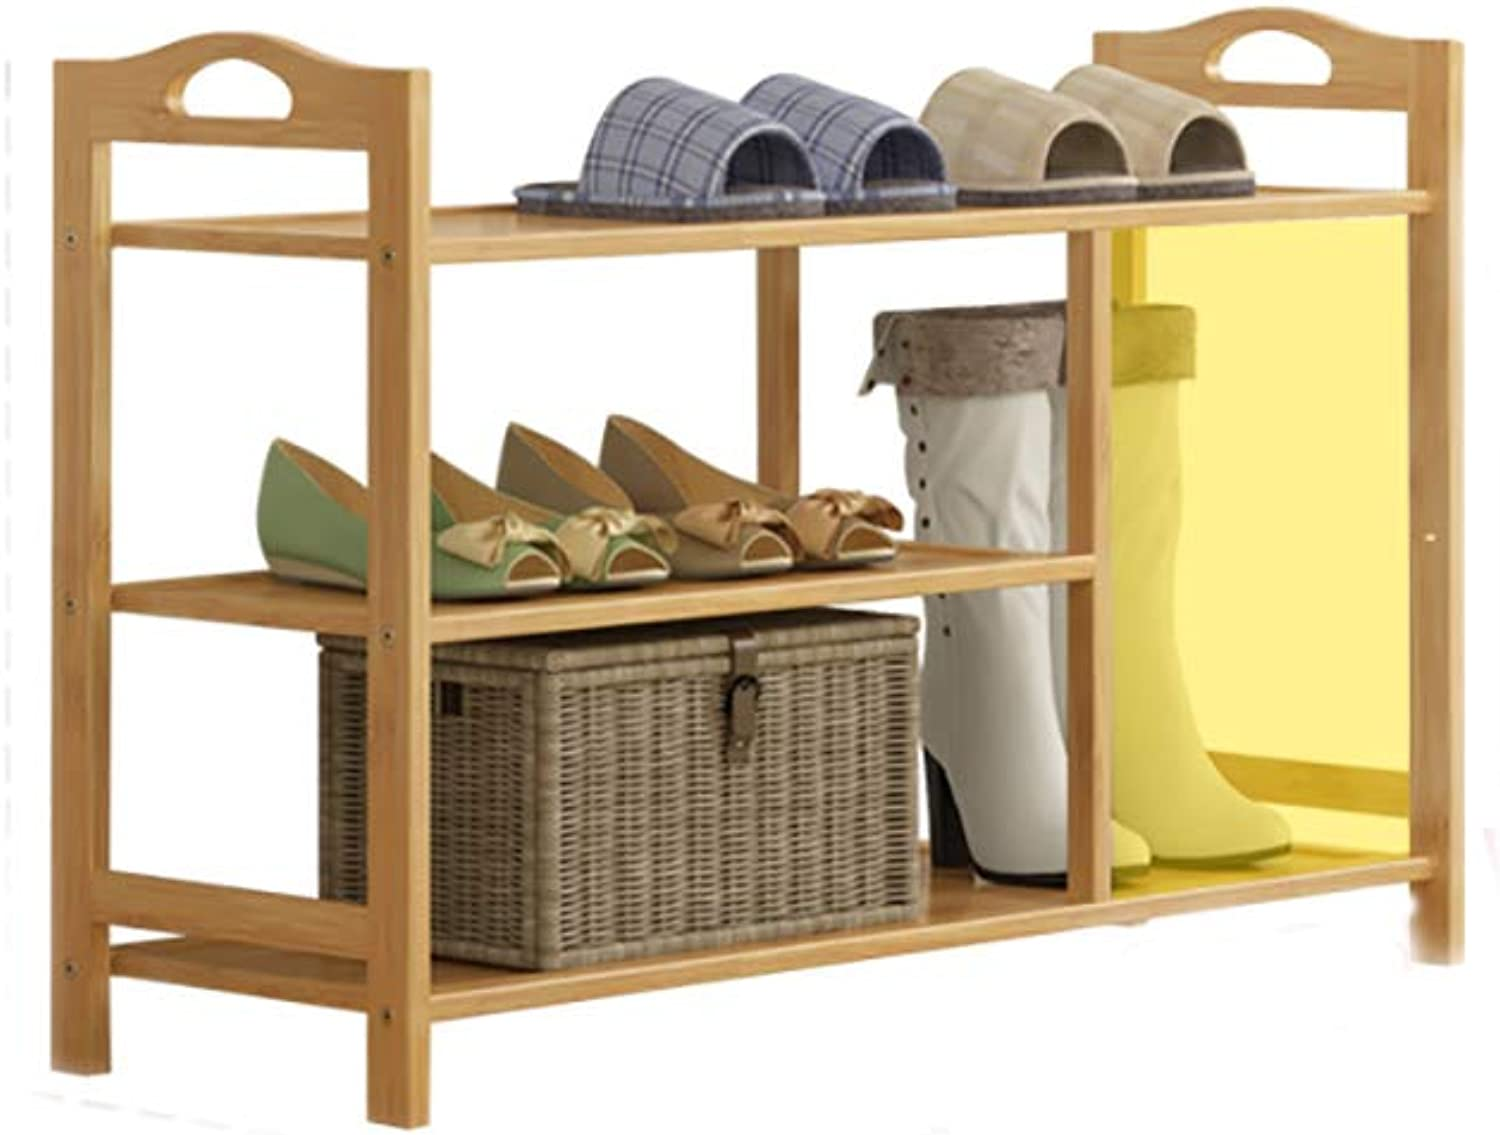 shoes Bench Organizing Rack Natural Bamboo shoes Rack 3 Layer Small shoes Shelf Simple Home shoes Storage Rack